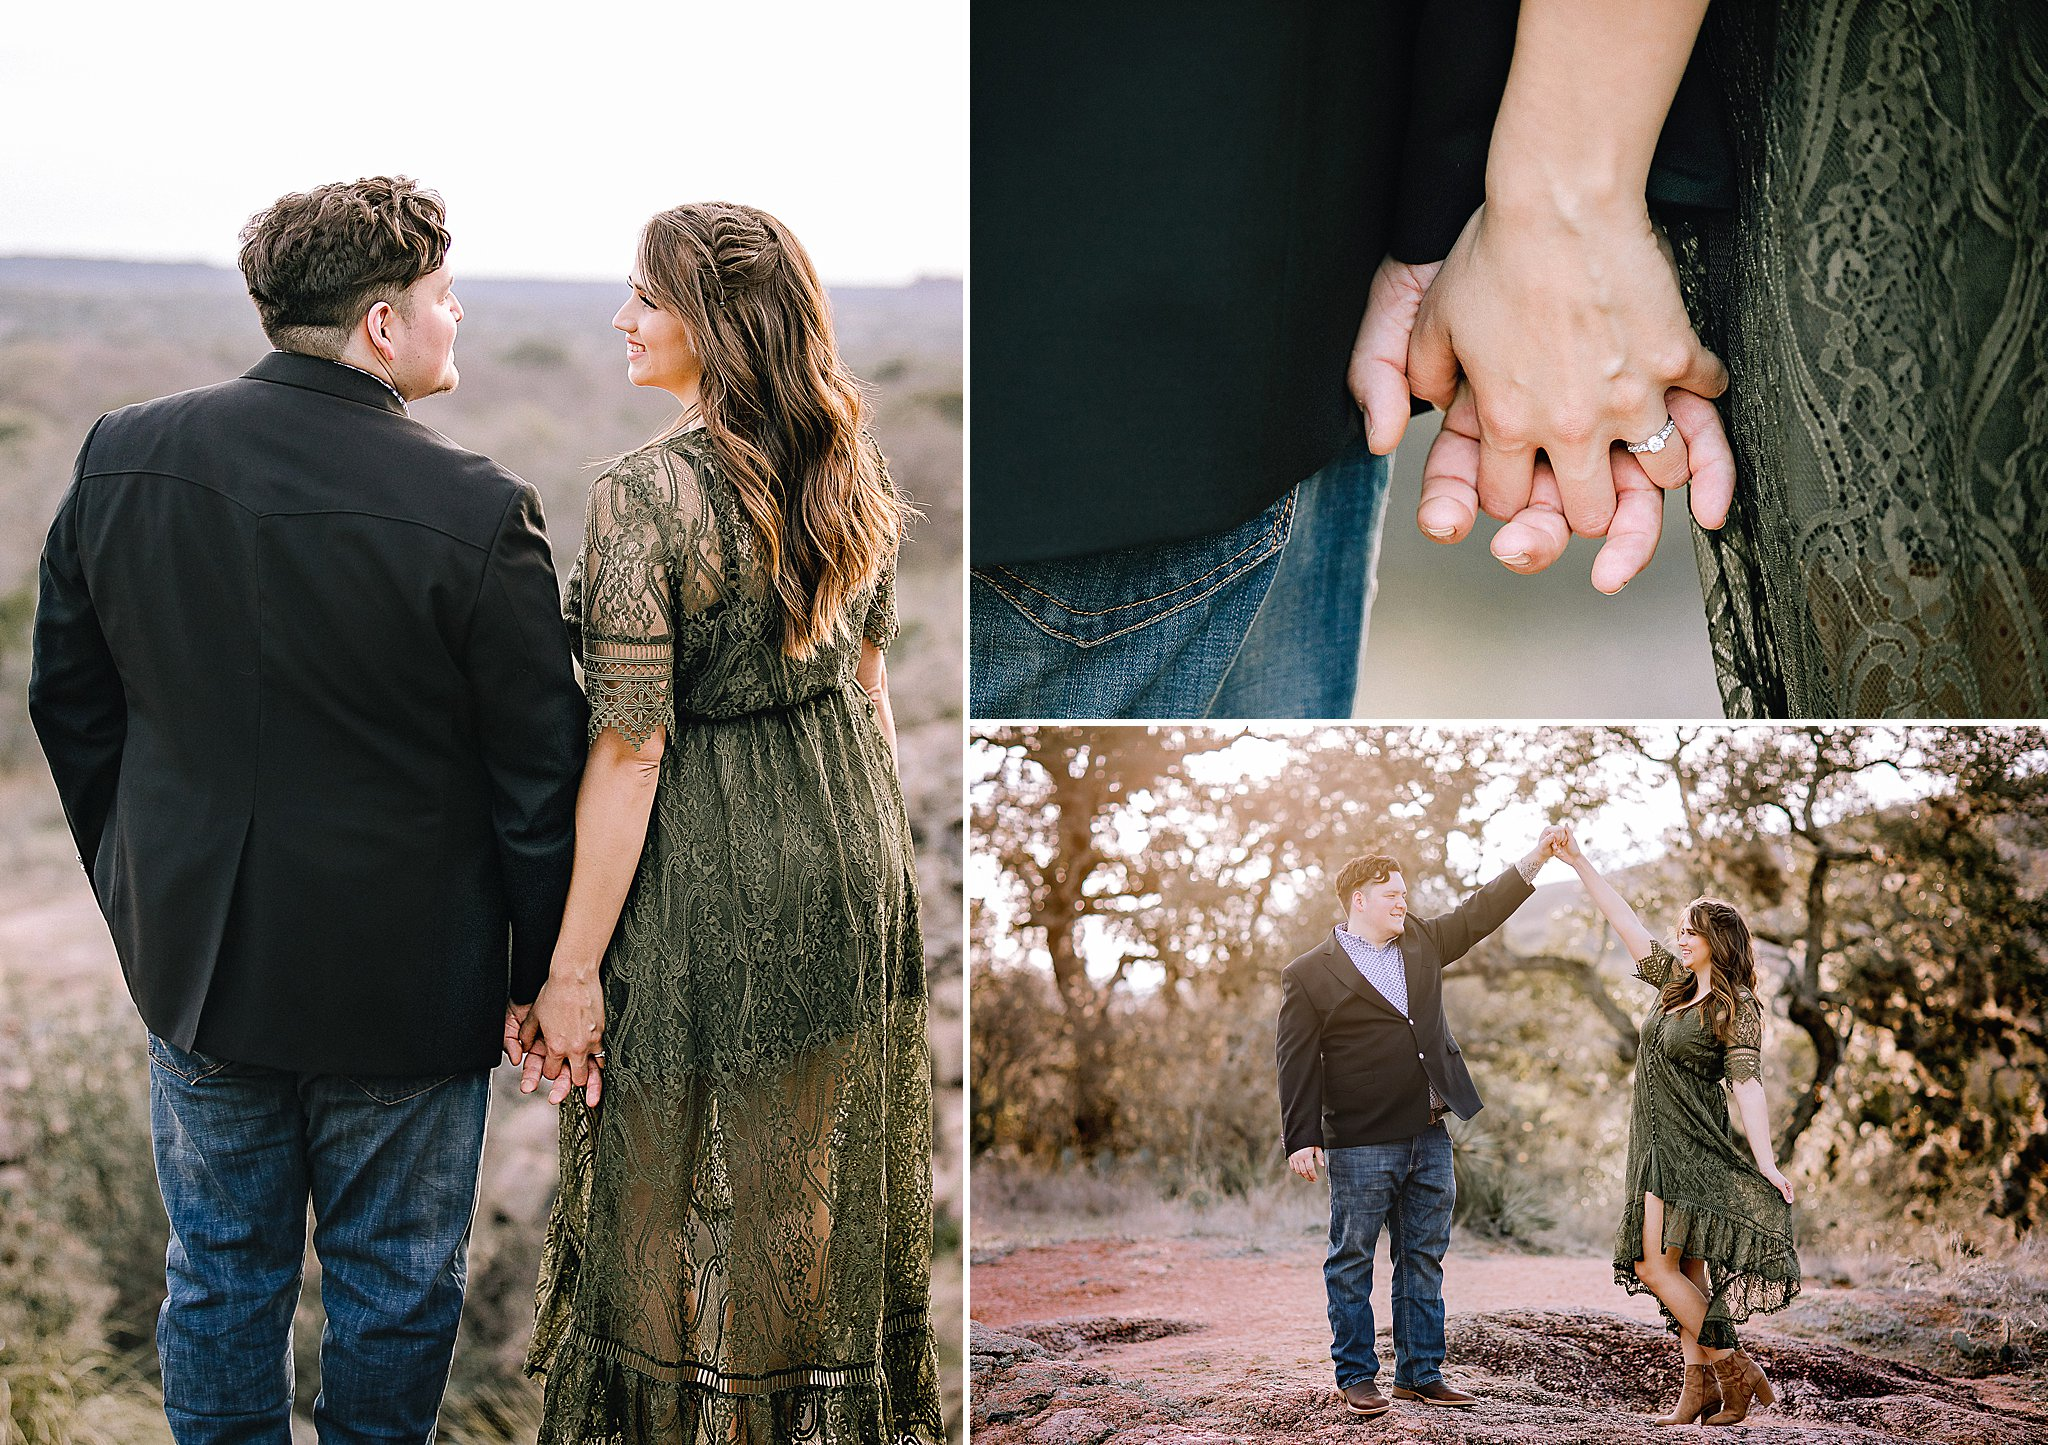 Carly-Barton-Photography-Fredericksburg-Texas-Engagement-Session-Enchanted-Rock-Photos_0021.jpg